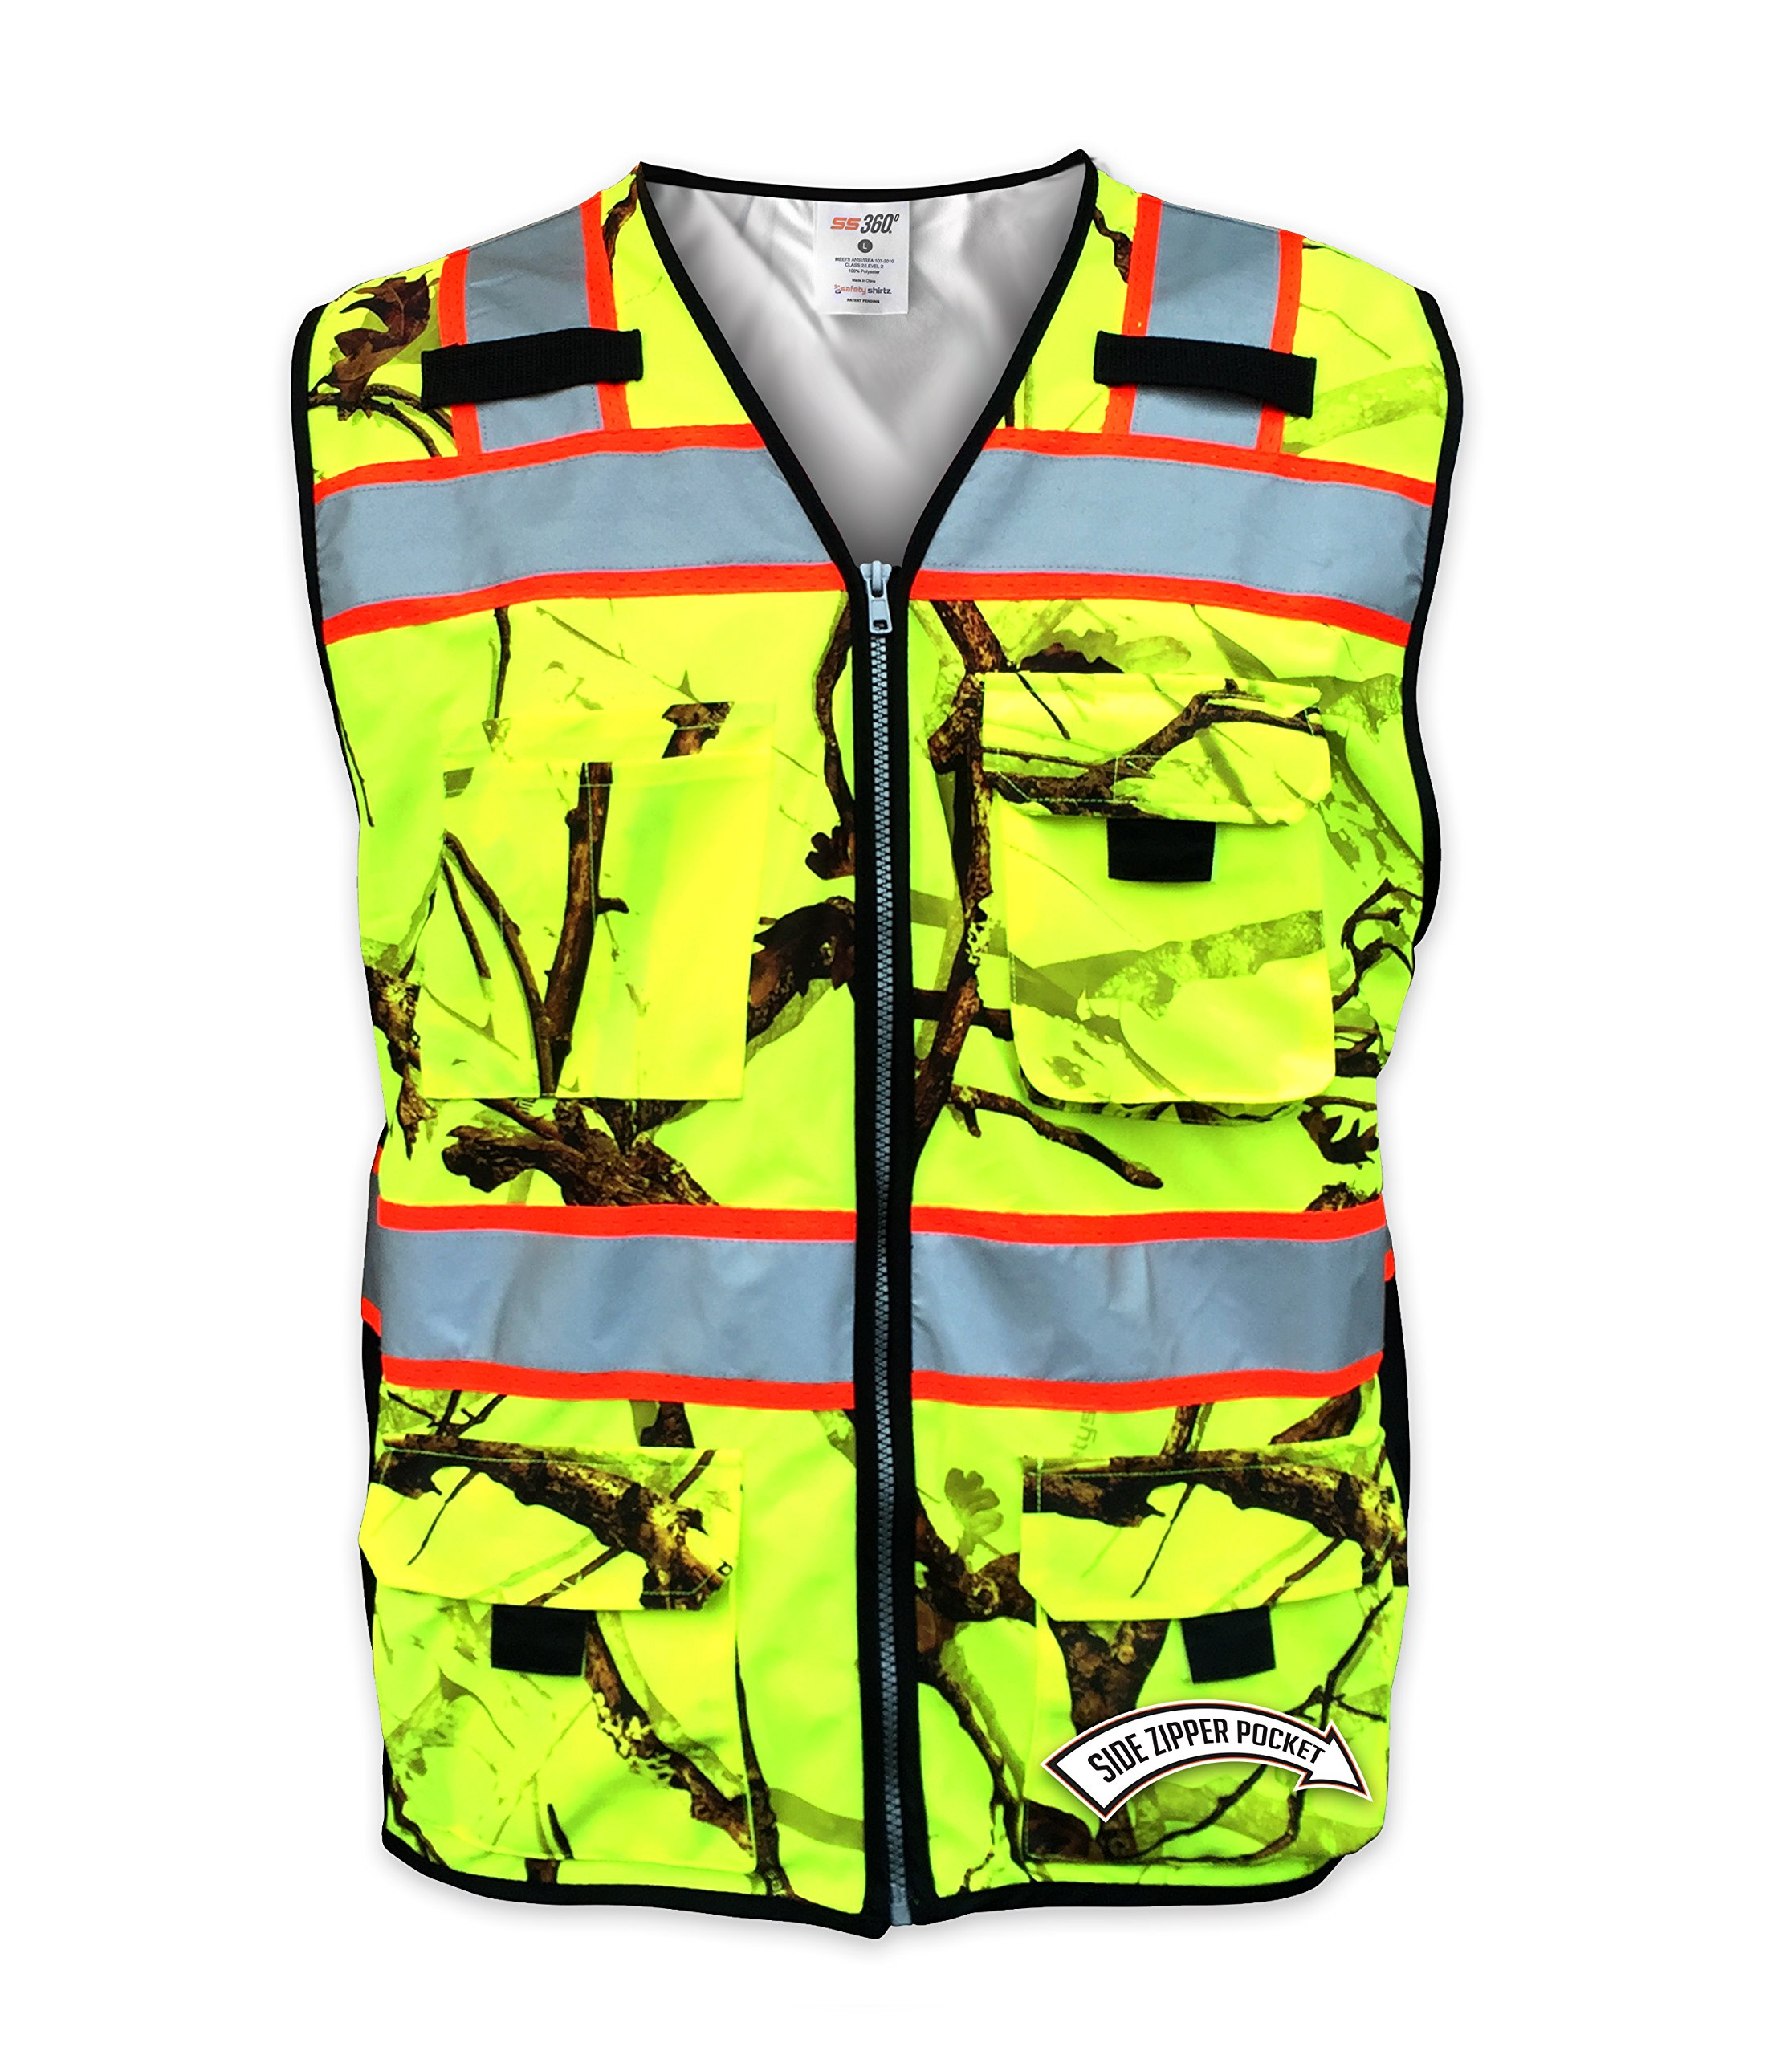 SafetyShirtz SS360 Backwoods Camo ANSI Class 2 Safety Vest XL